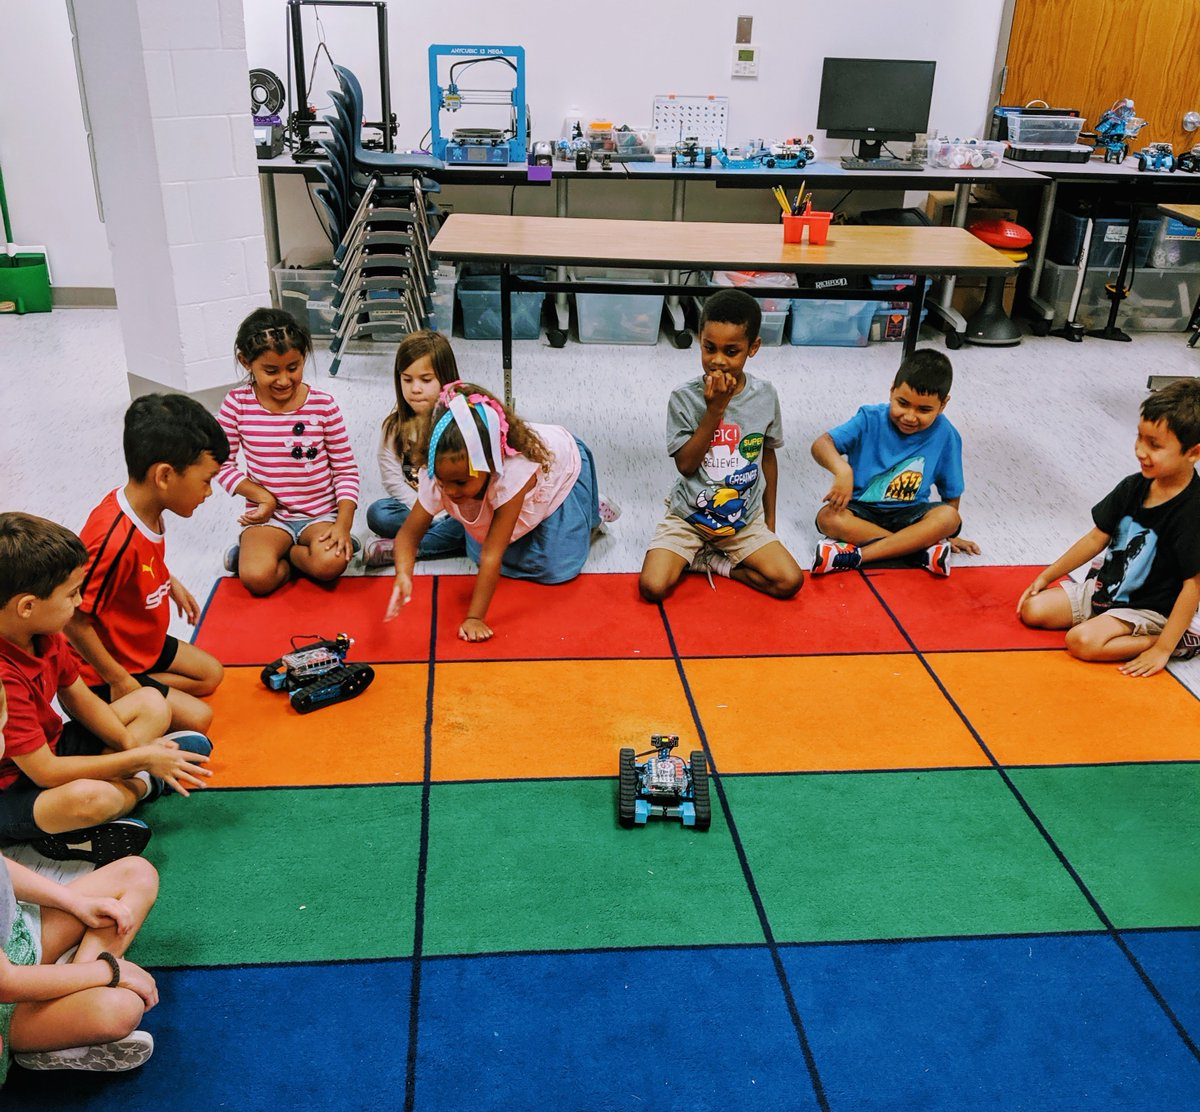 Week 1: Introduction to Robotics, First Grade Truly exciting to share autonomous robotics with young children. Pure joy, filled with suspense!😀 <a target='_blank' href='http://twitter.com/AbingdonGIFT'>@AbingdonGIFT</a> <a target='_blank' href='http://twitter.com/STEM_K12'>@STEM_K12</a> <a target='_blank' href='https://t.co/xeSXSGYdS4'>https://t.co/xeSXSGYdS4</a>